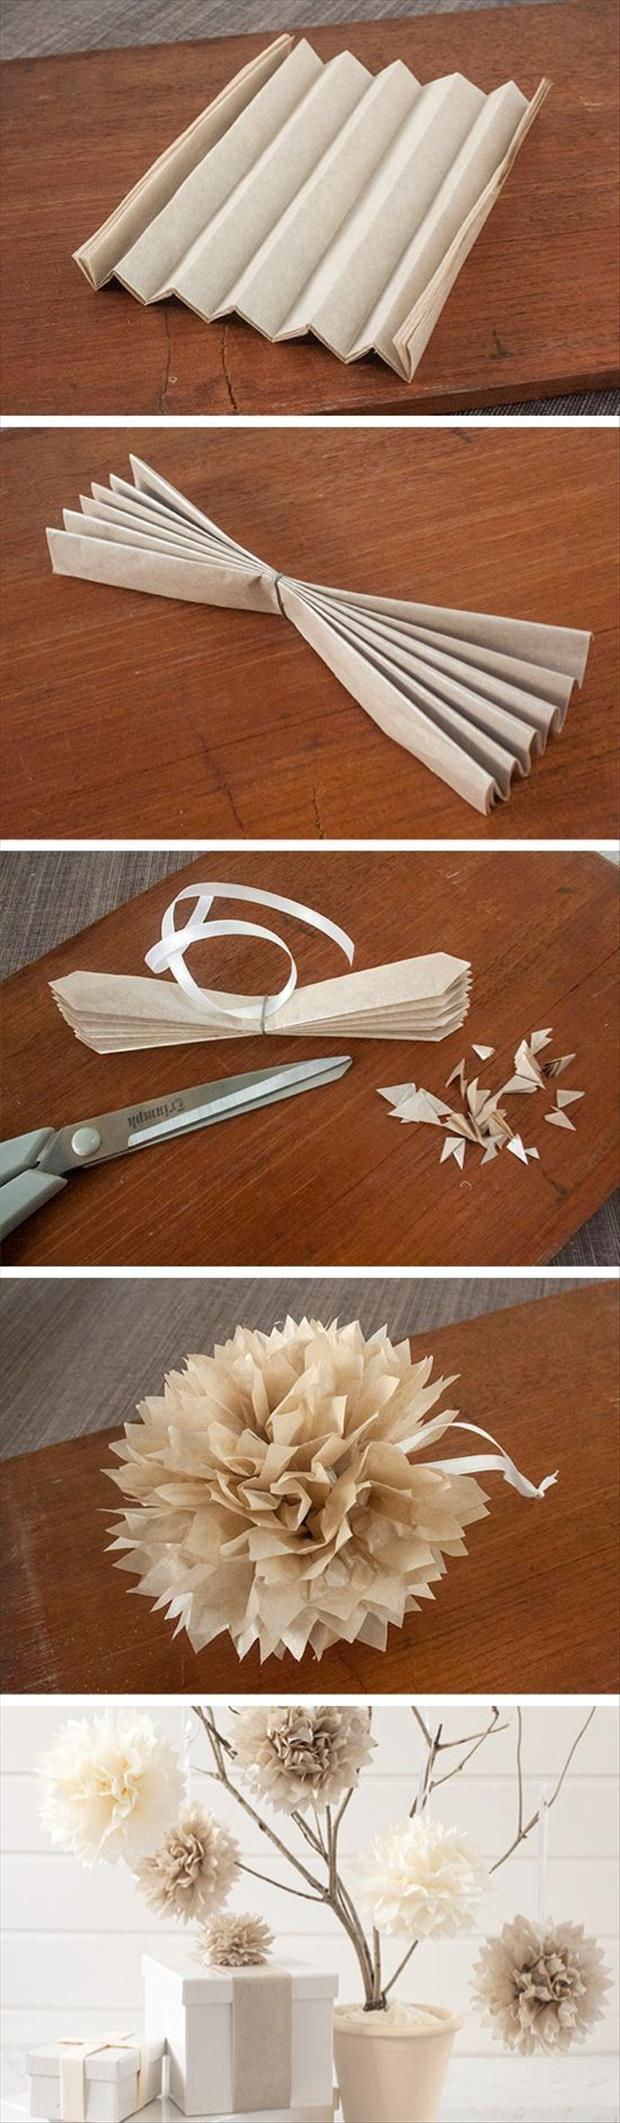 making paper flowers crafts